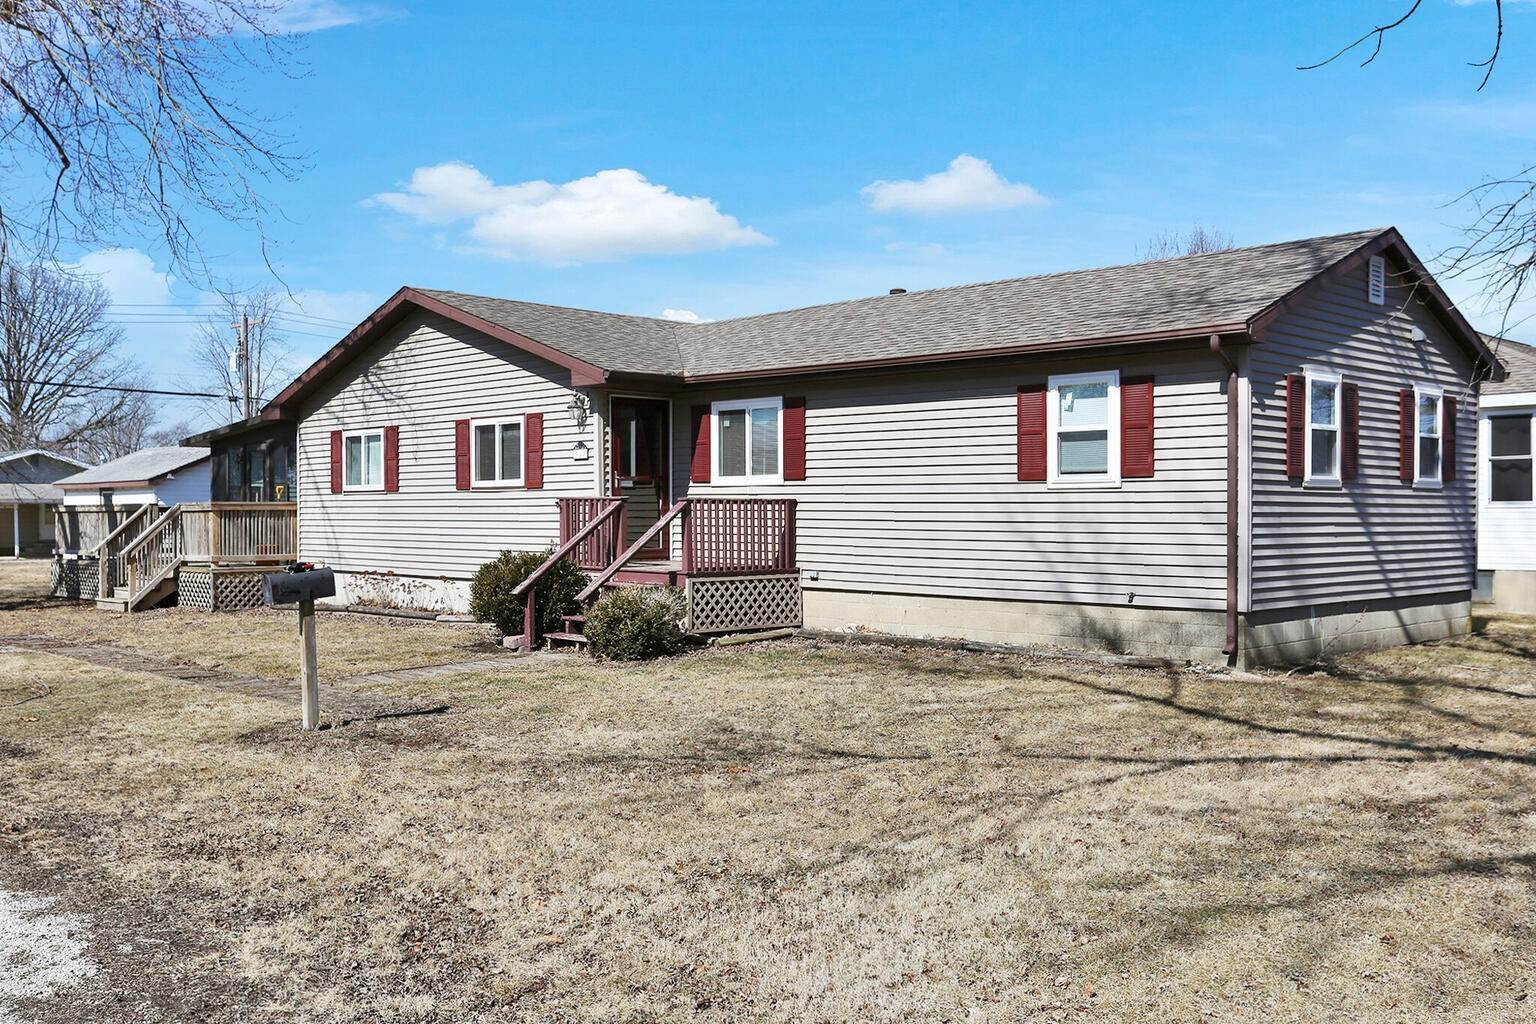 Single Family Homes for Sale at 528 E 6th Street Gibson City, Illinois 60936 United States